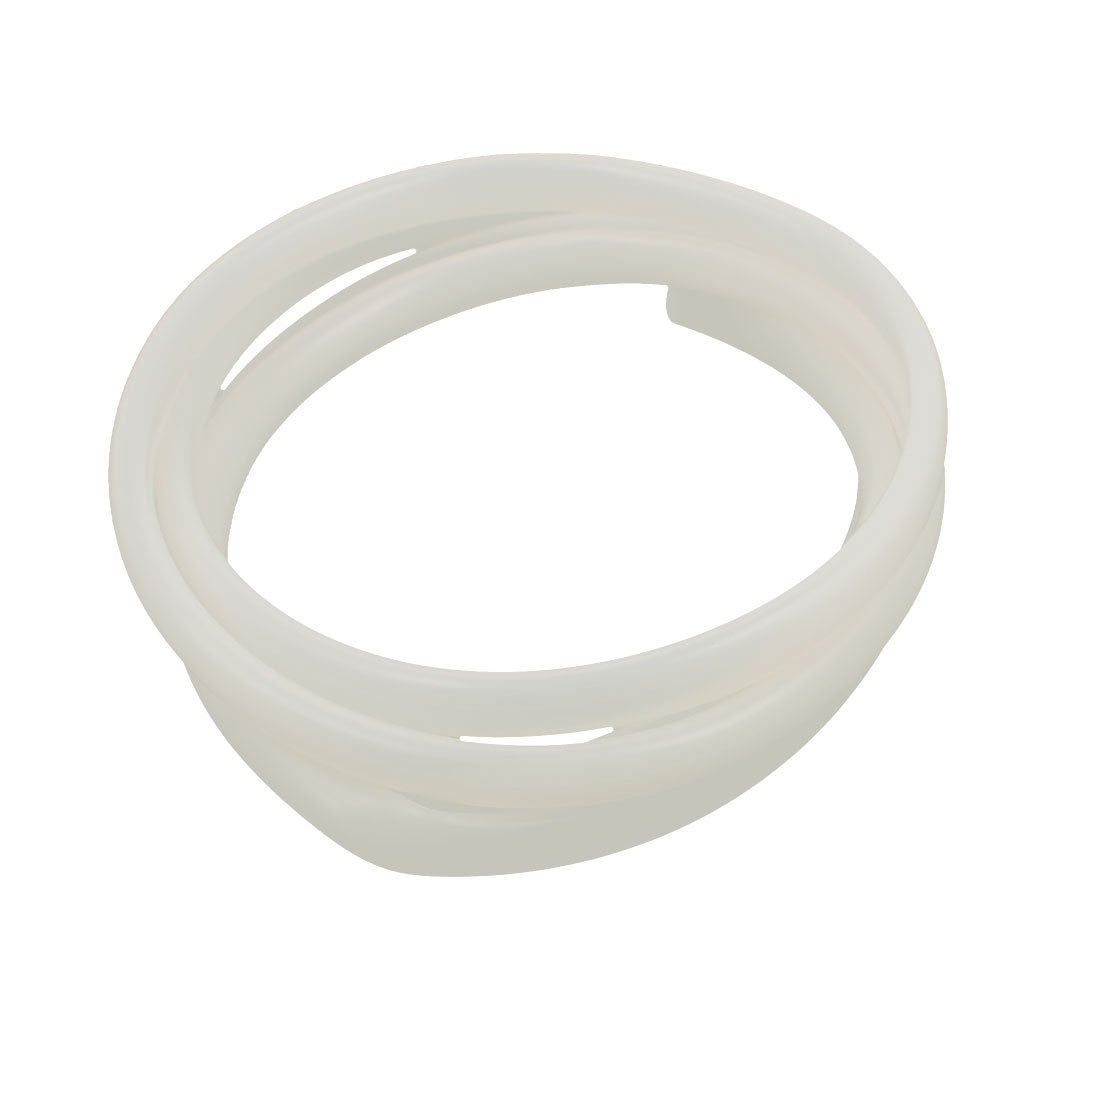 8mm x 10mm Beige Silicone Tube Water Air Pump Hose Pipe 2 Meters